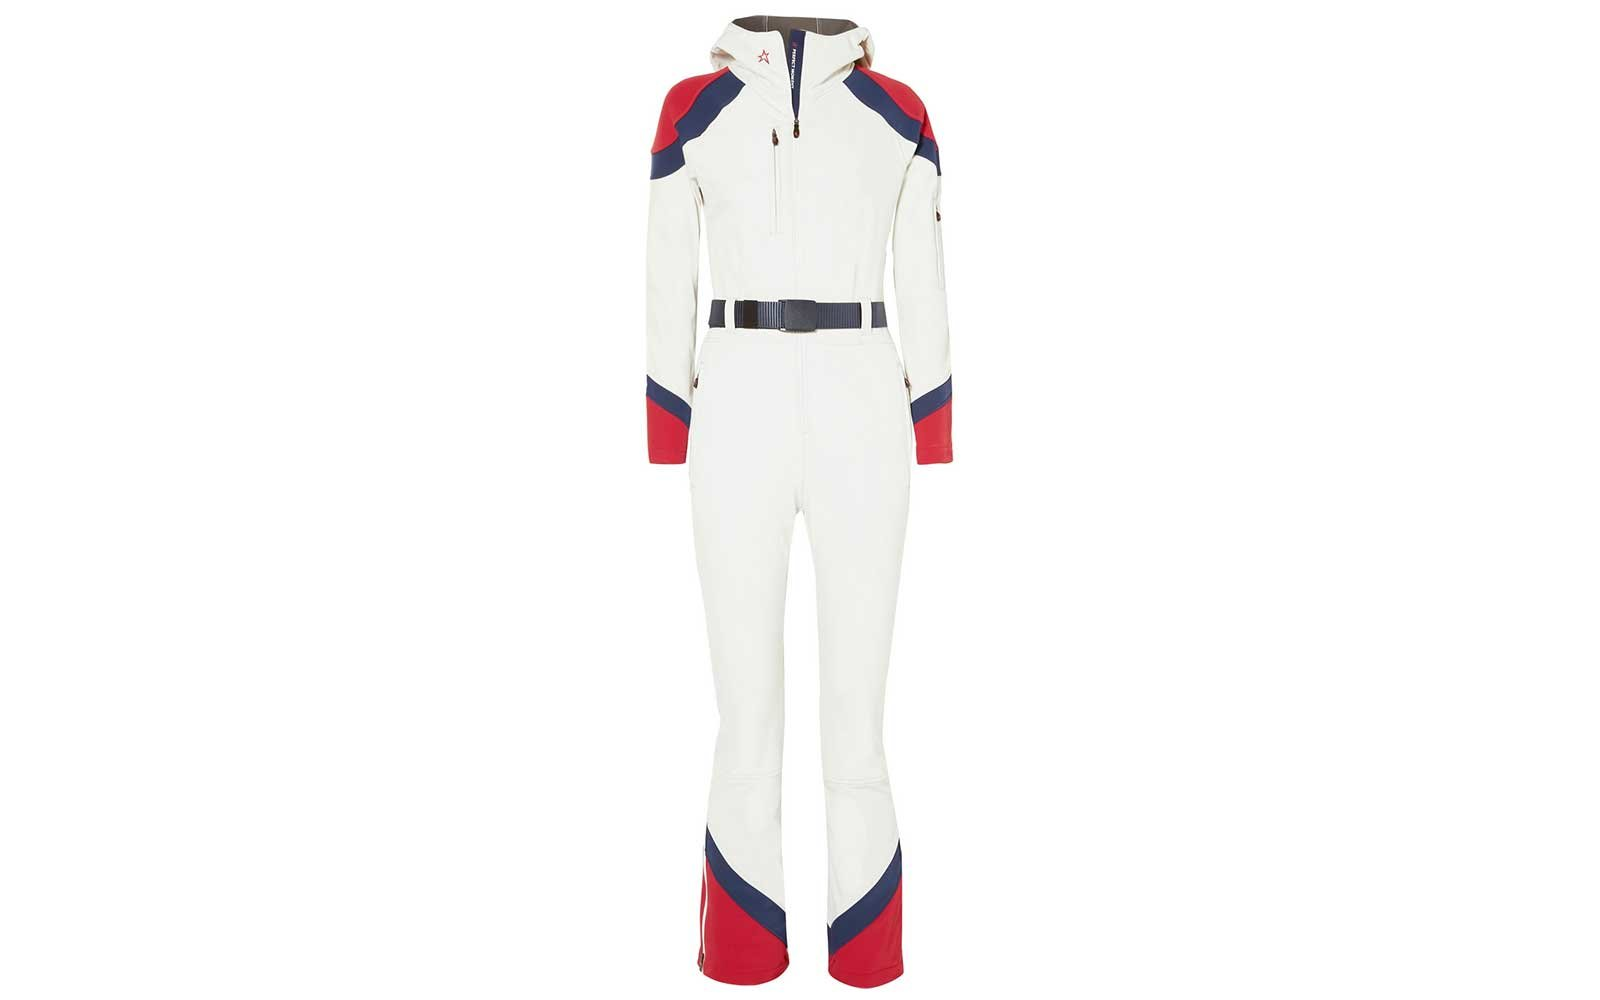 Red white and blue full body ski suit